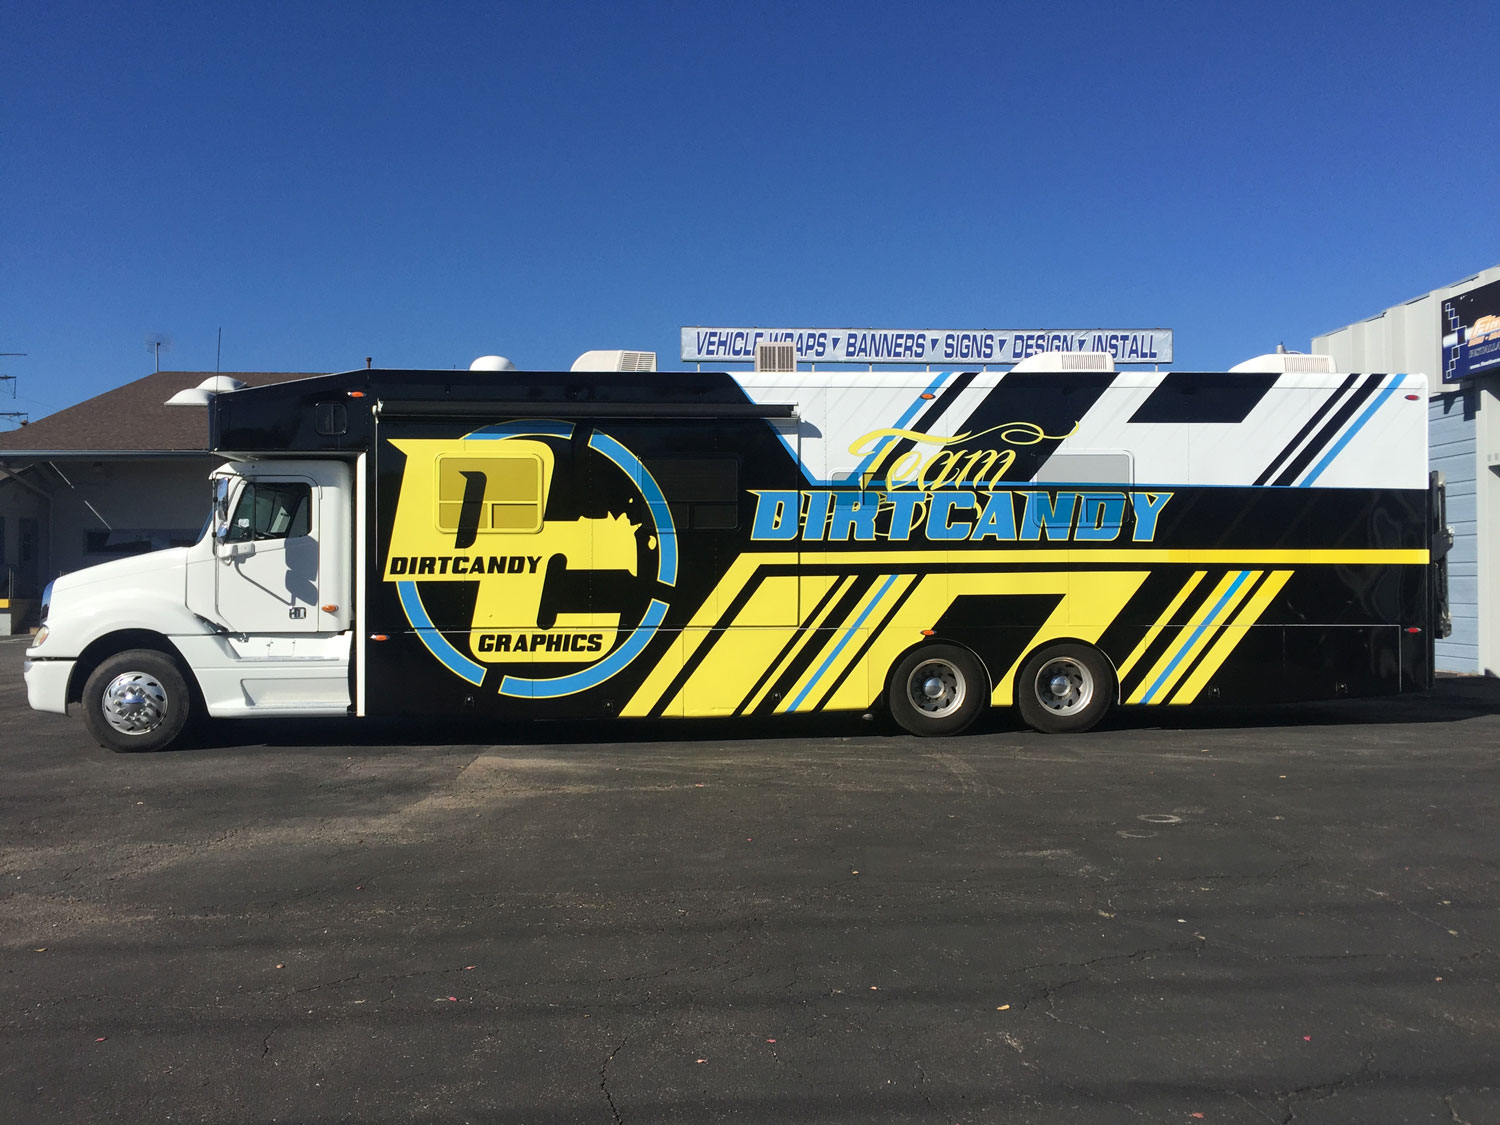 Team Dirt Candy Racing Fineline Graphics